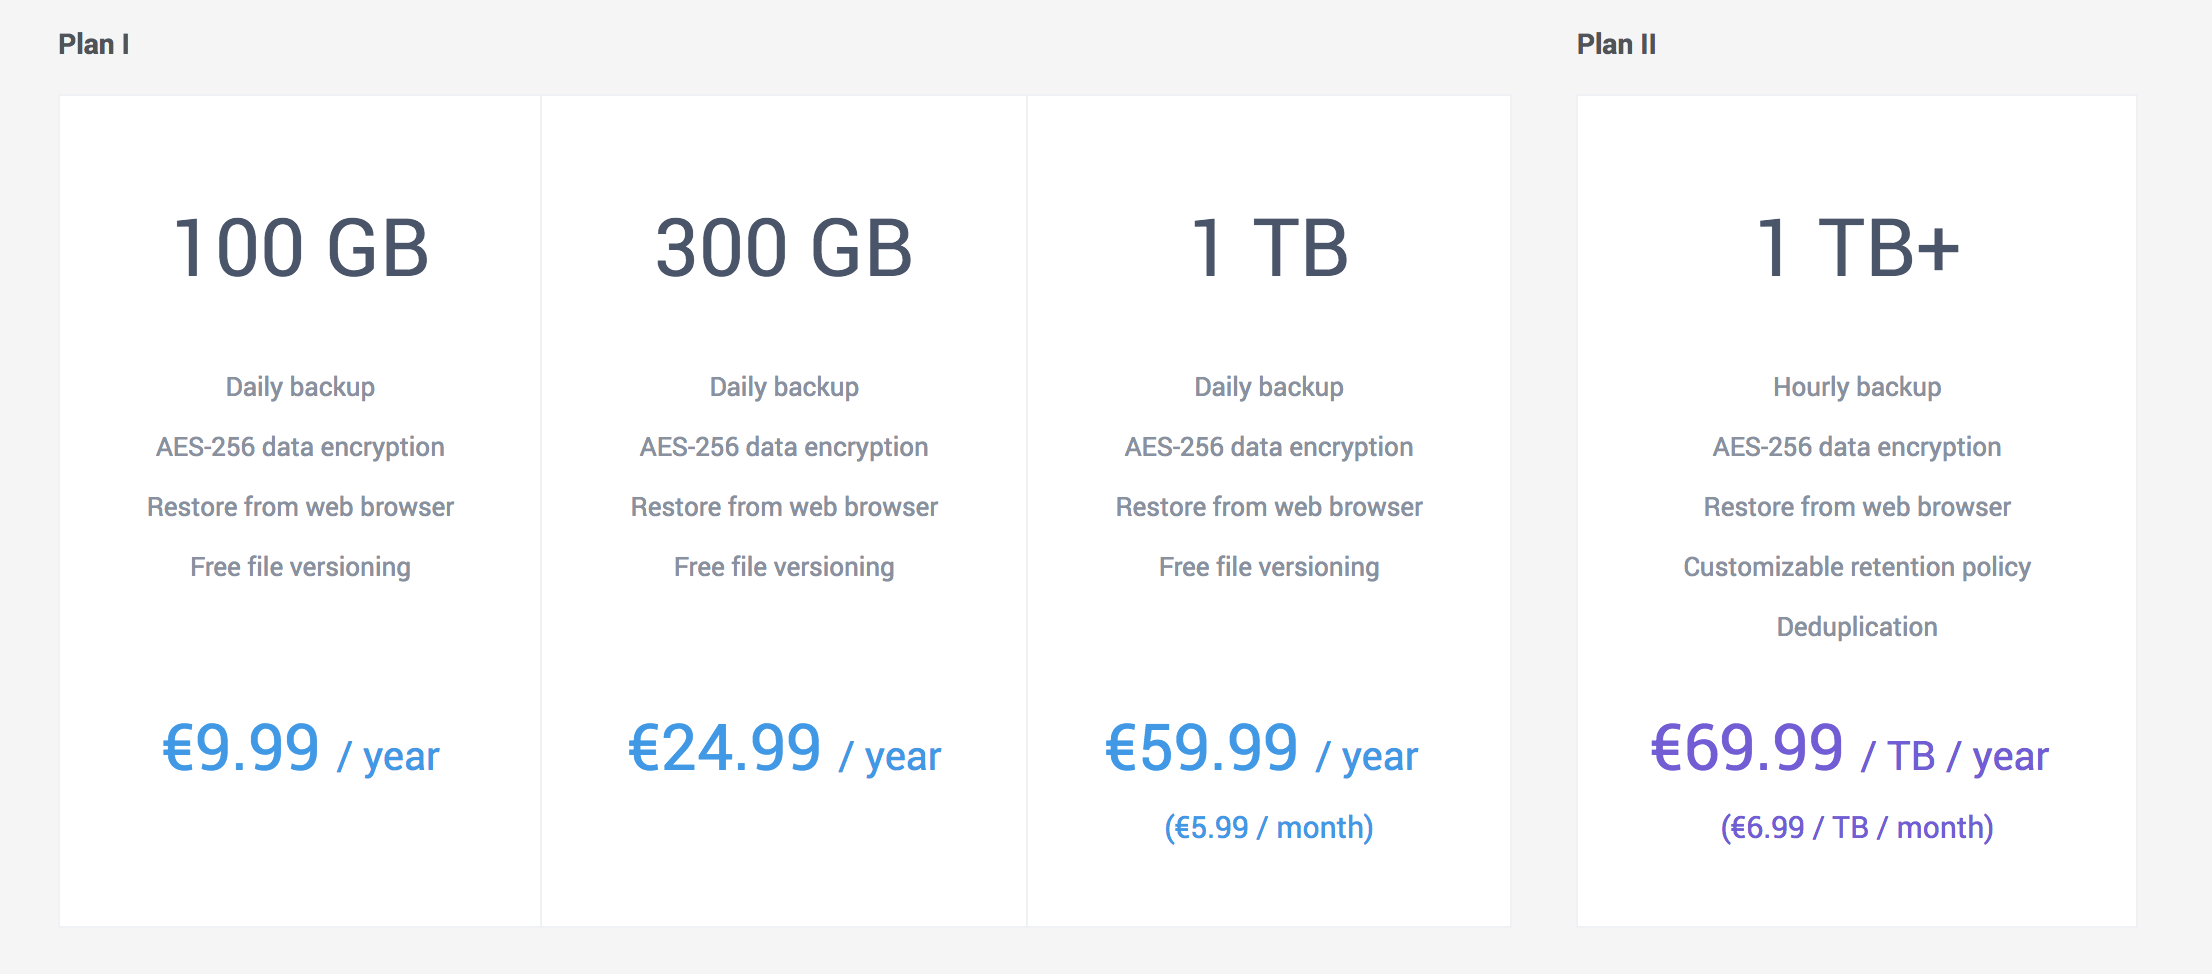 No longer talking about paying for unlimited storage, Cloud Storage for the NAS is per TB of storage.